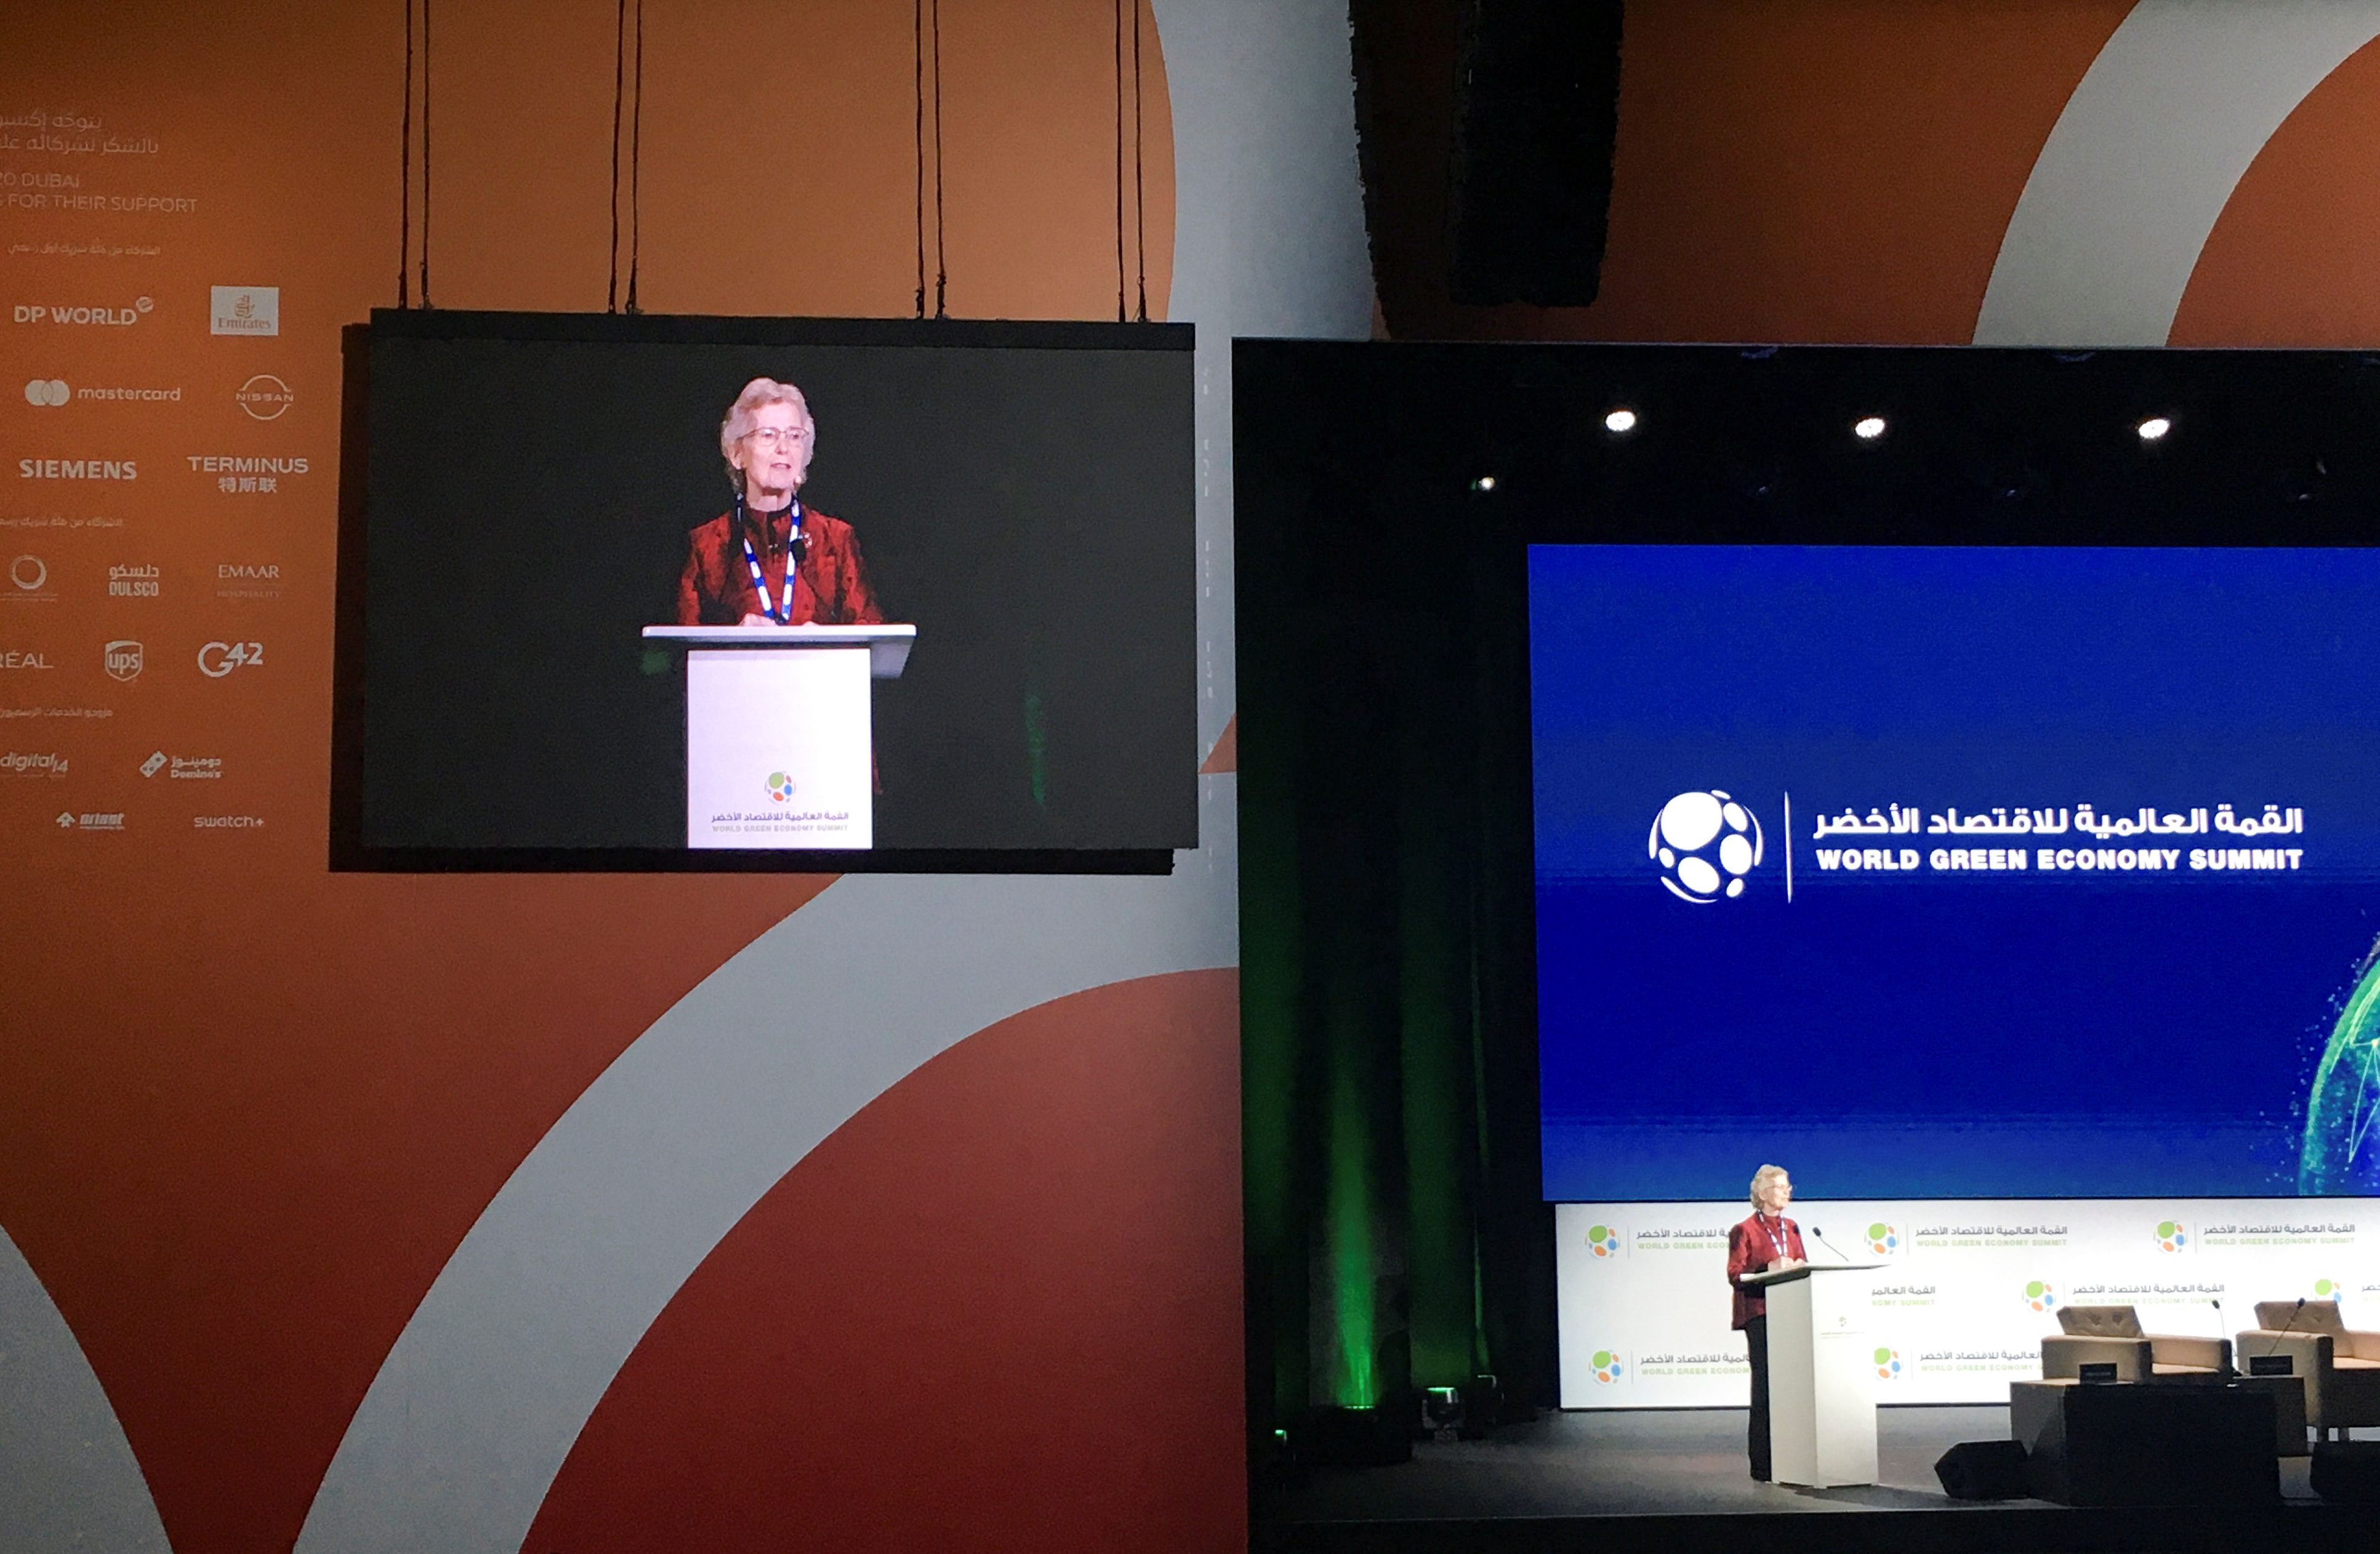 Former United Nations High Commissioner for Human Rights Mary Robinson speaks at the World Green Economy Summit at Expo 2020 in Dubai, United Arab Emirates, October 6, 2021. REUTERS/Alexander Cornwell